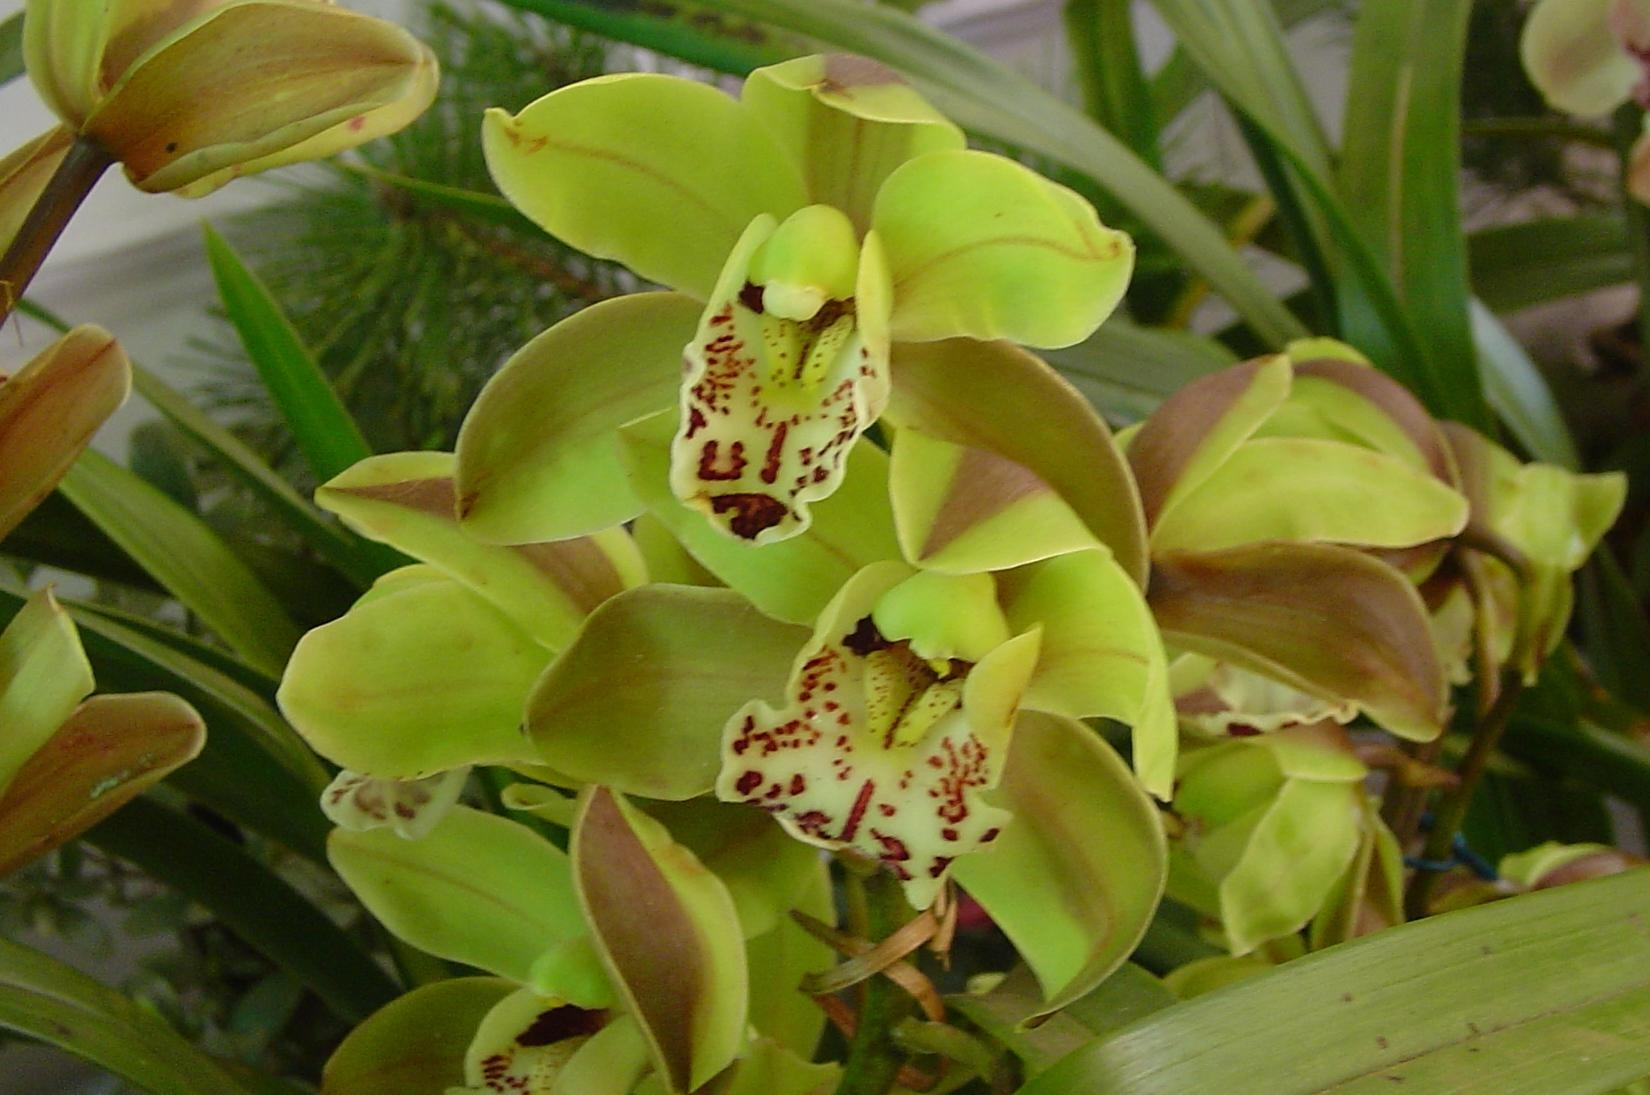 /wp-content/uploads/2020/10/Cymbidium%20green-2.JPG